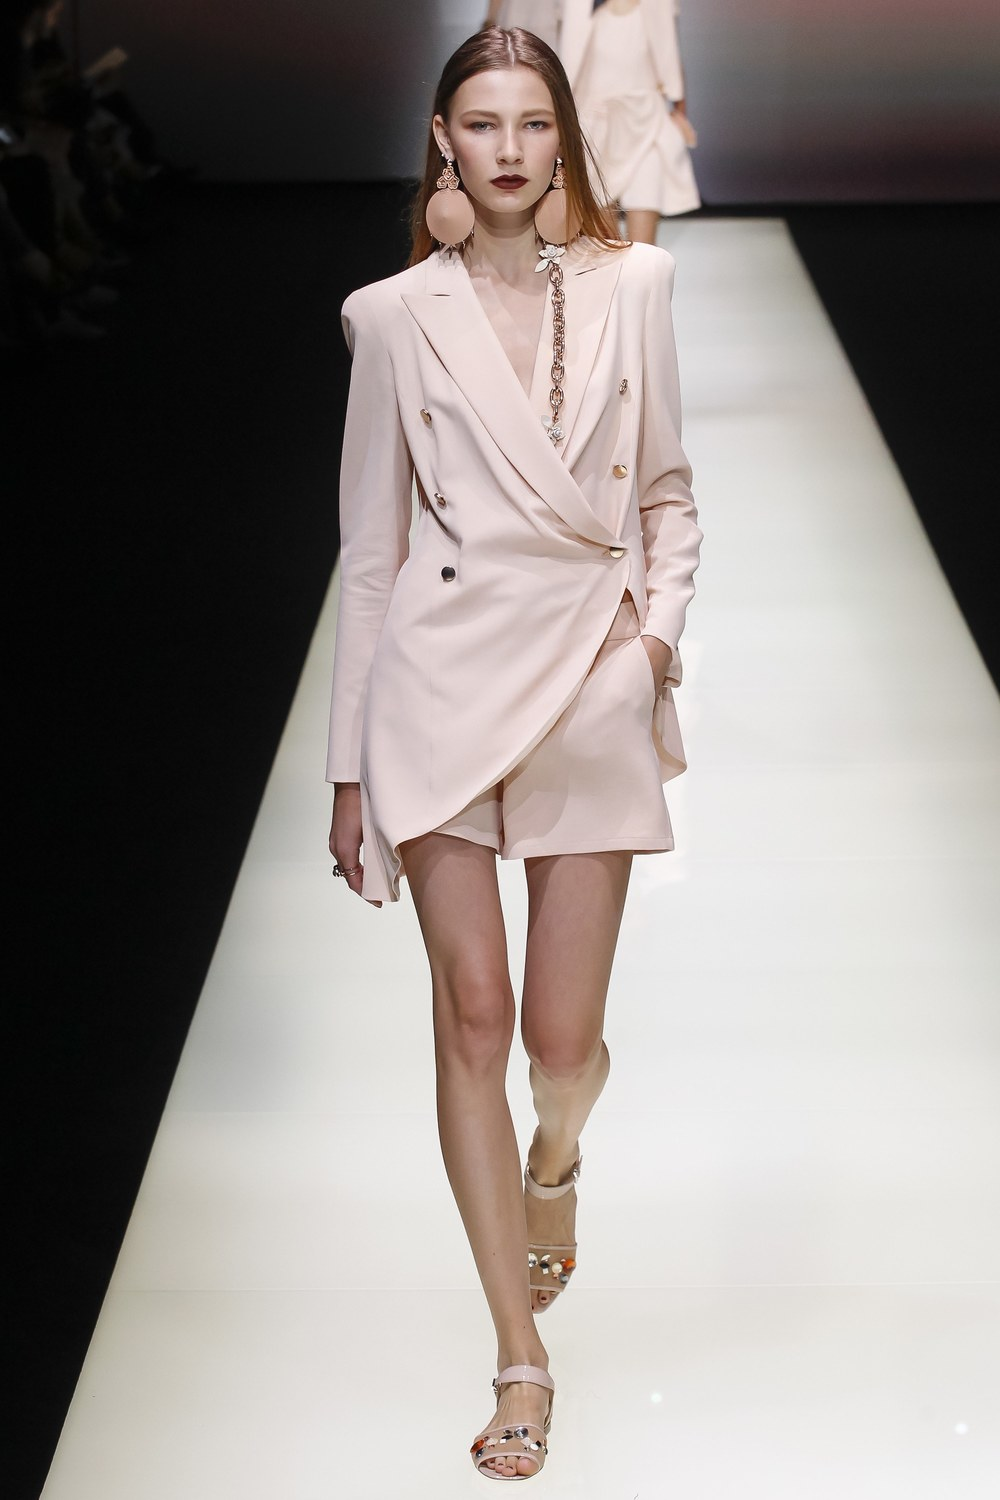 Spring Ready to Wear from Emporio Armani via Vogue.com